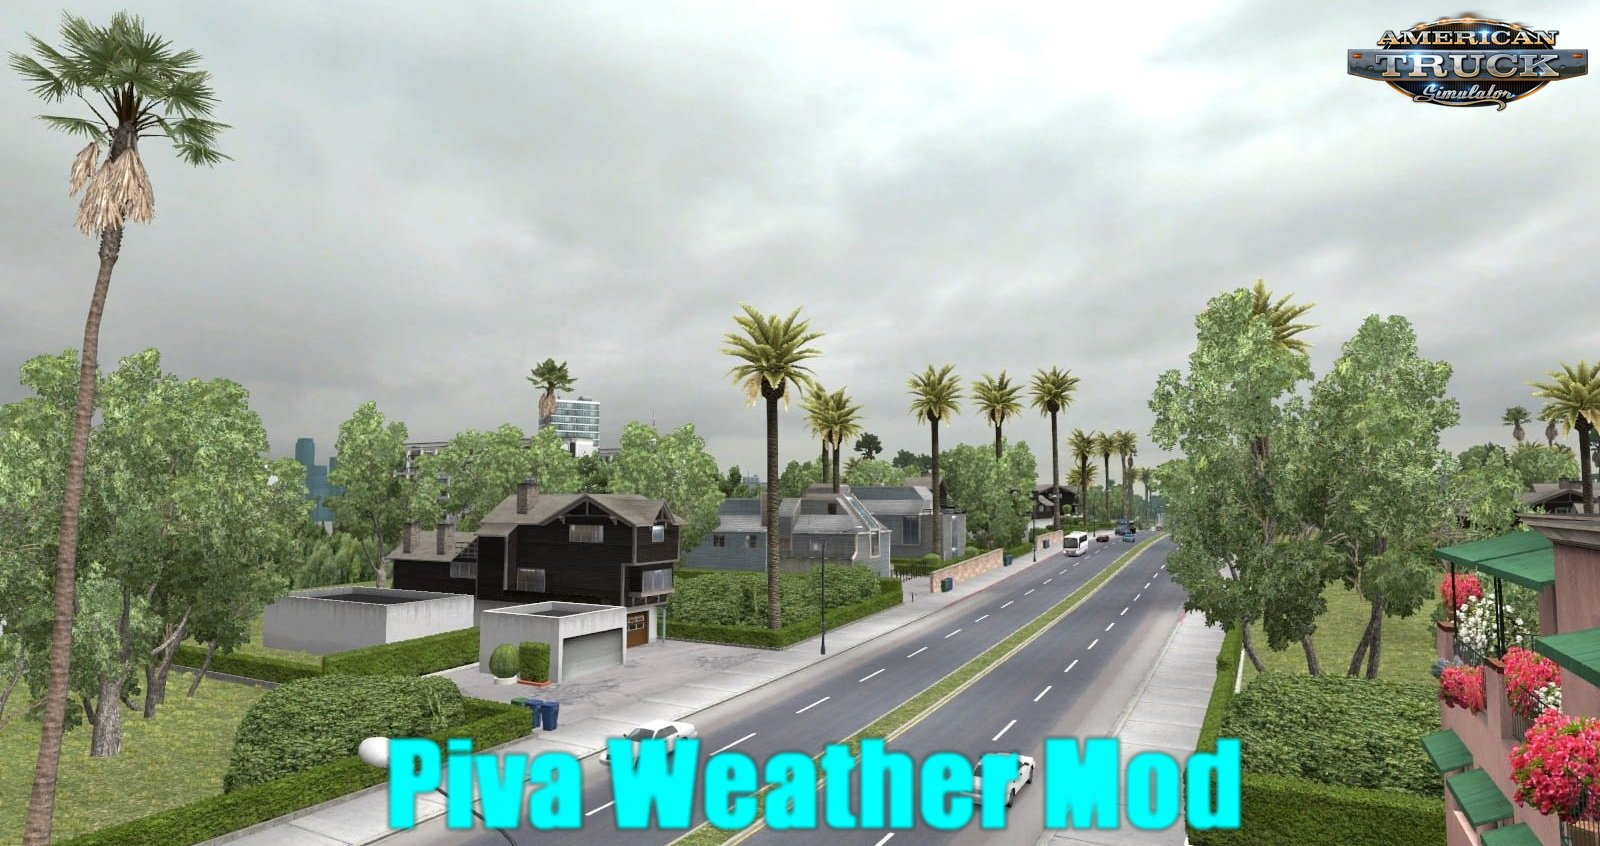 Piva Weather Mod v1.4 Edit by Catalin V (1.37.x)